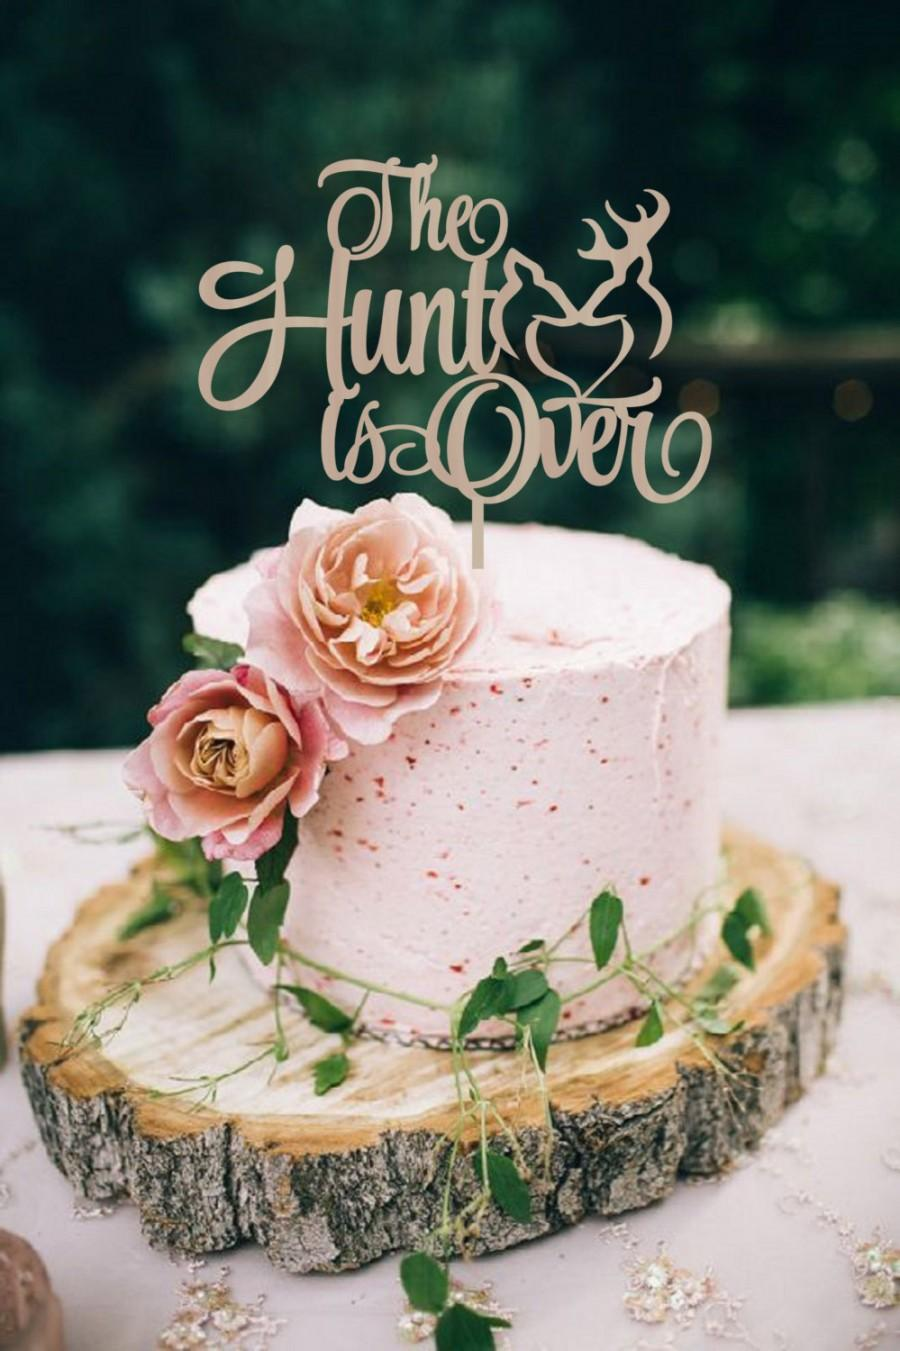 Wedding Rustic Cake Topper The Hunt Is Over Deer